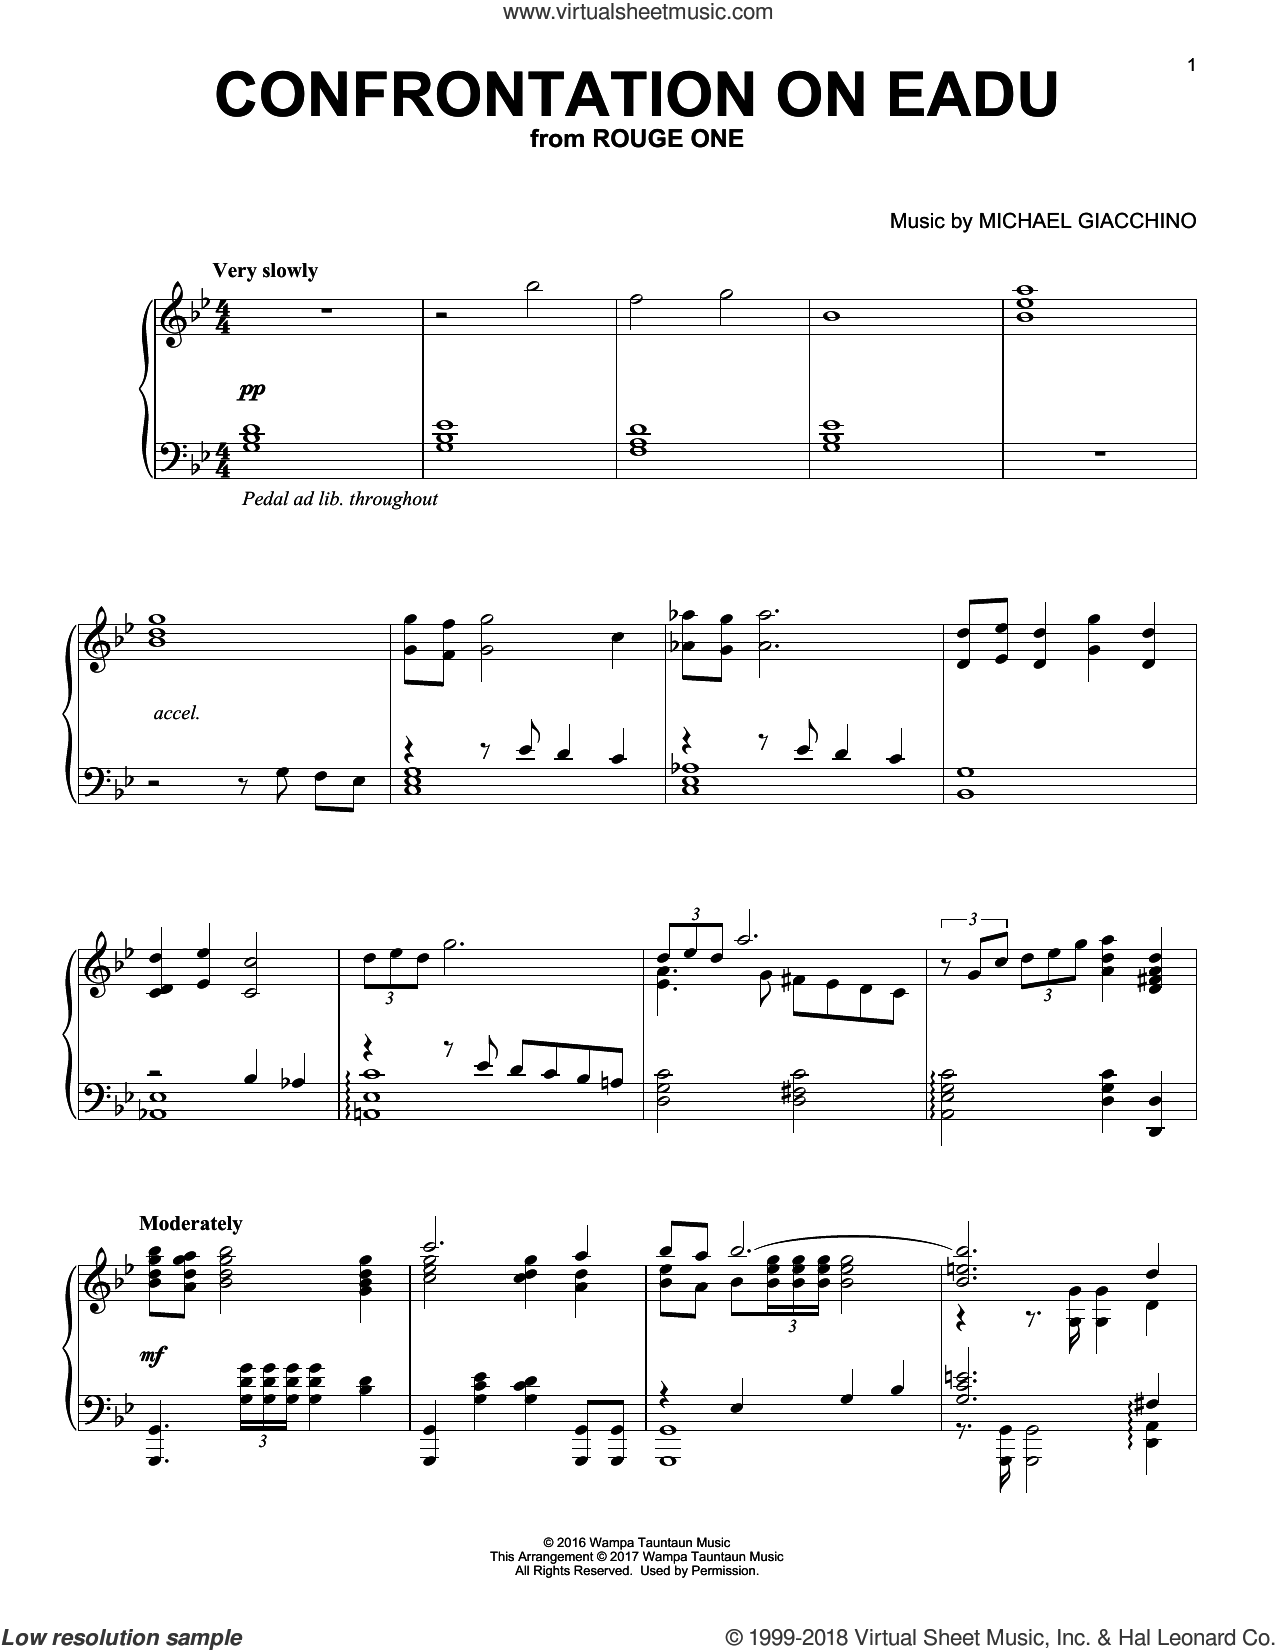 Confrontation On Eadu, (intermediate) sheet music for piano solo by Michael Giacchino, classical score, intermediate skill level